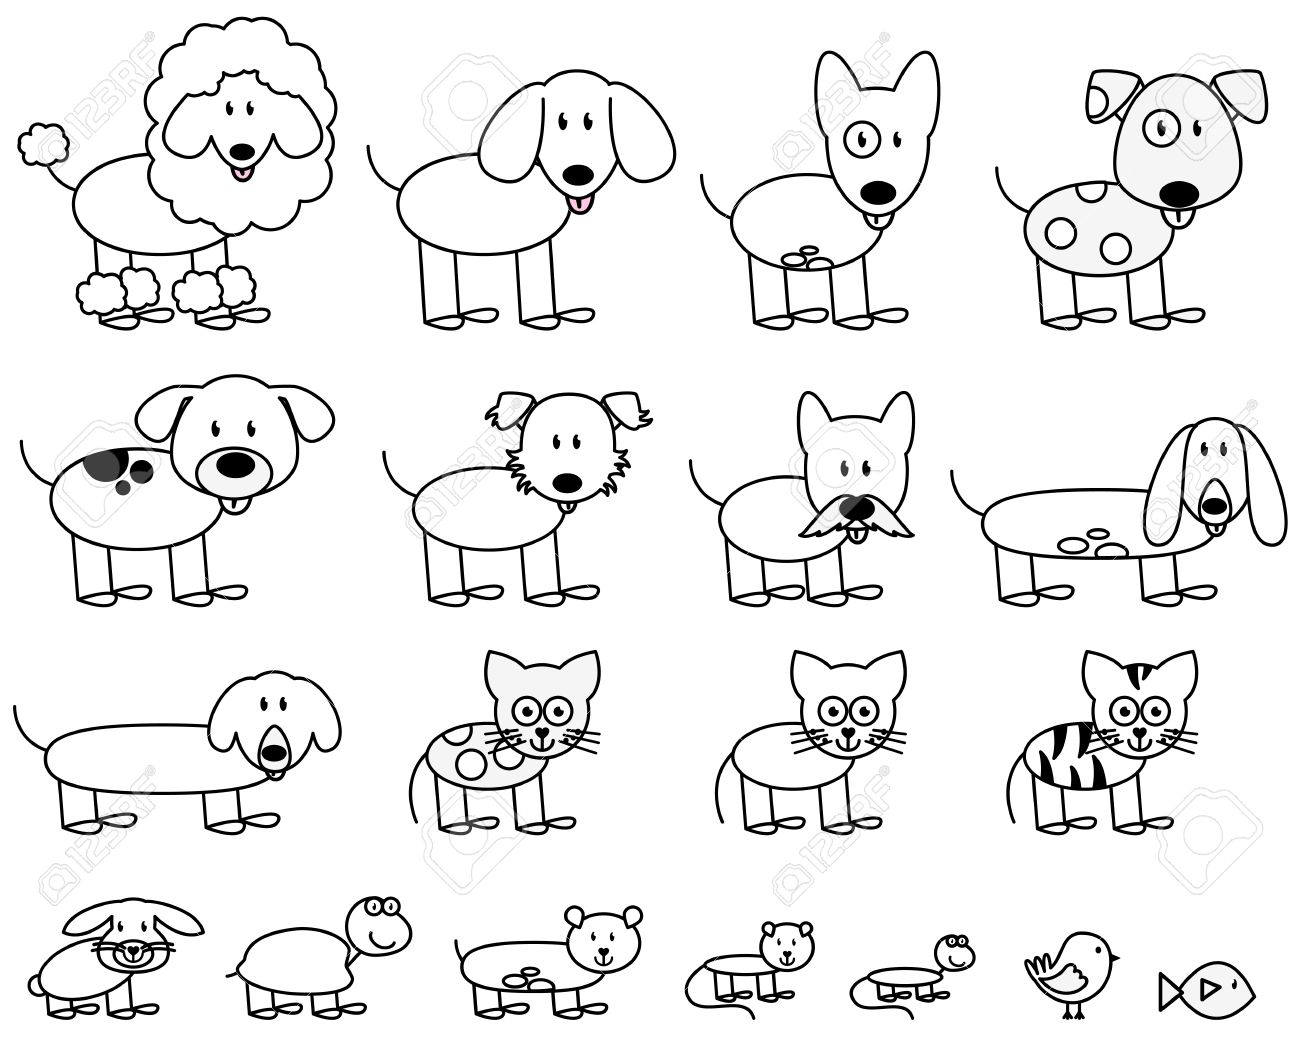 Vector Collection of Cute Stick Figure Pets and Animals - 45300349